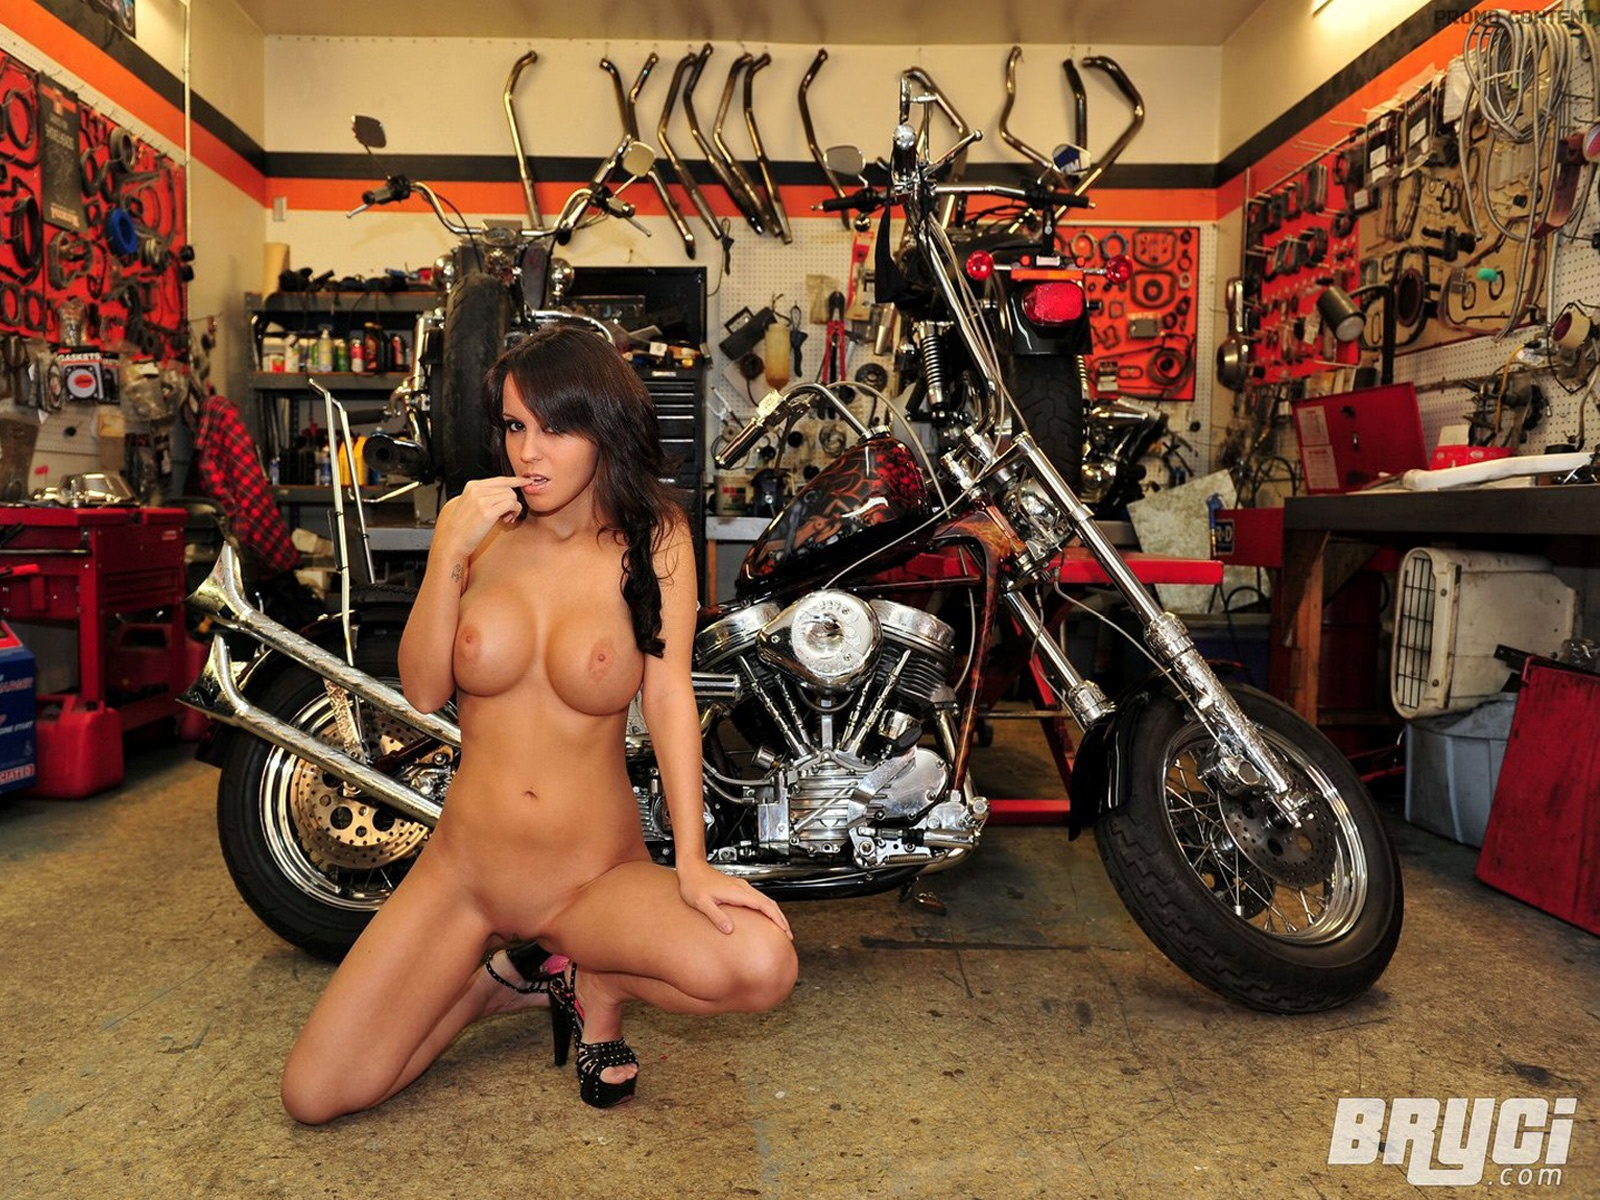 naked bryci and custom motorcycle sexy photo at the bike